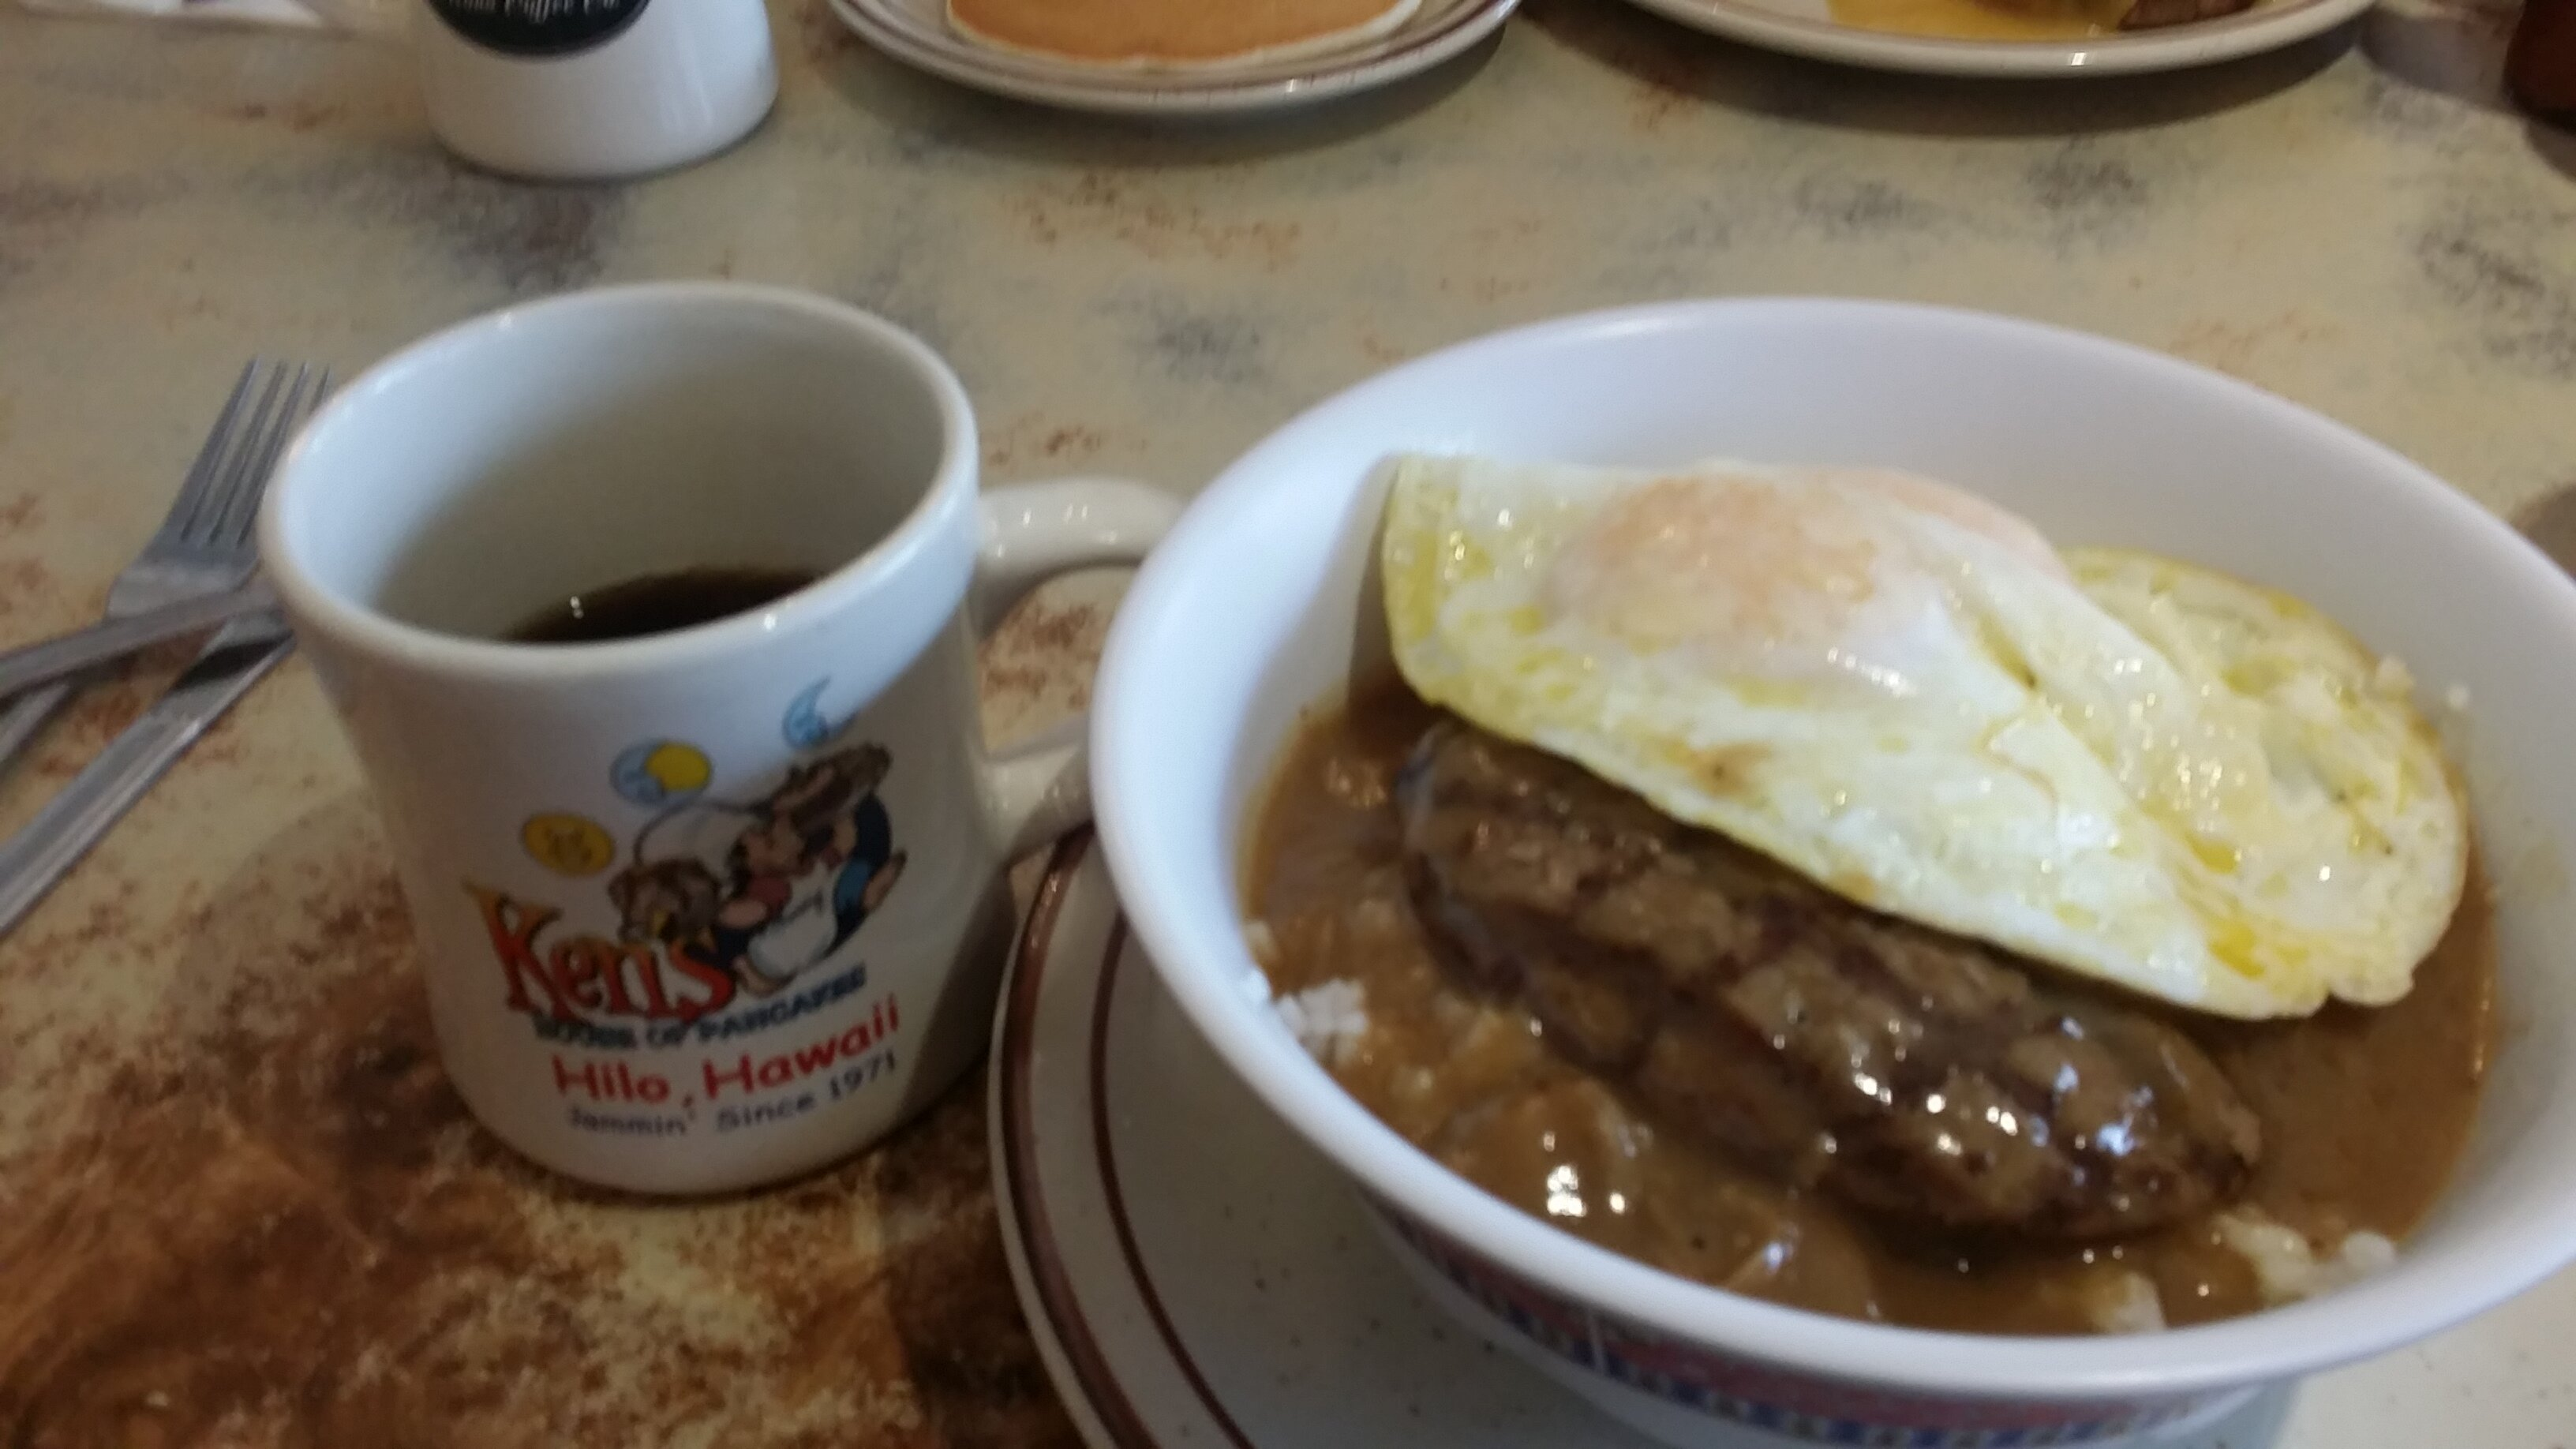 Moco Loco at Ken's House of Pancakes in Hilo